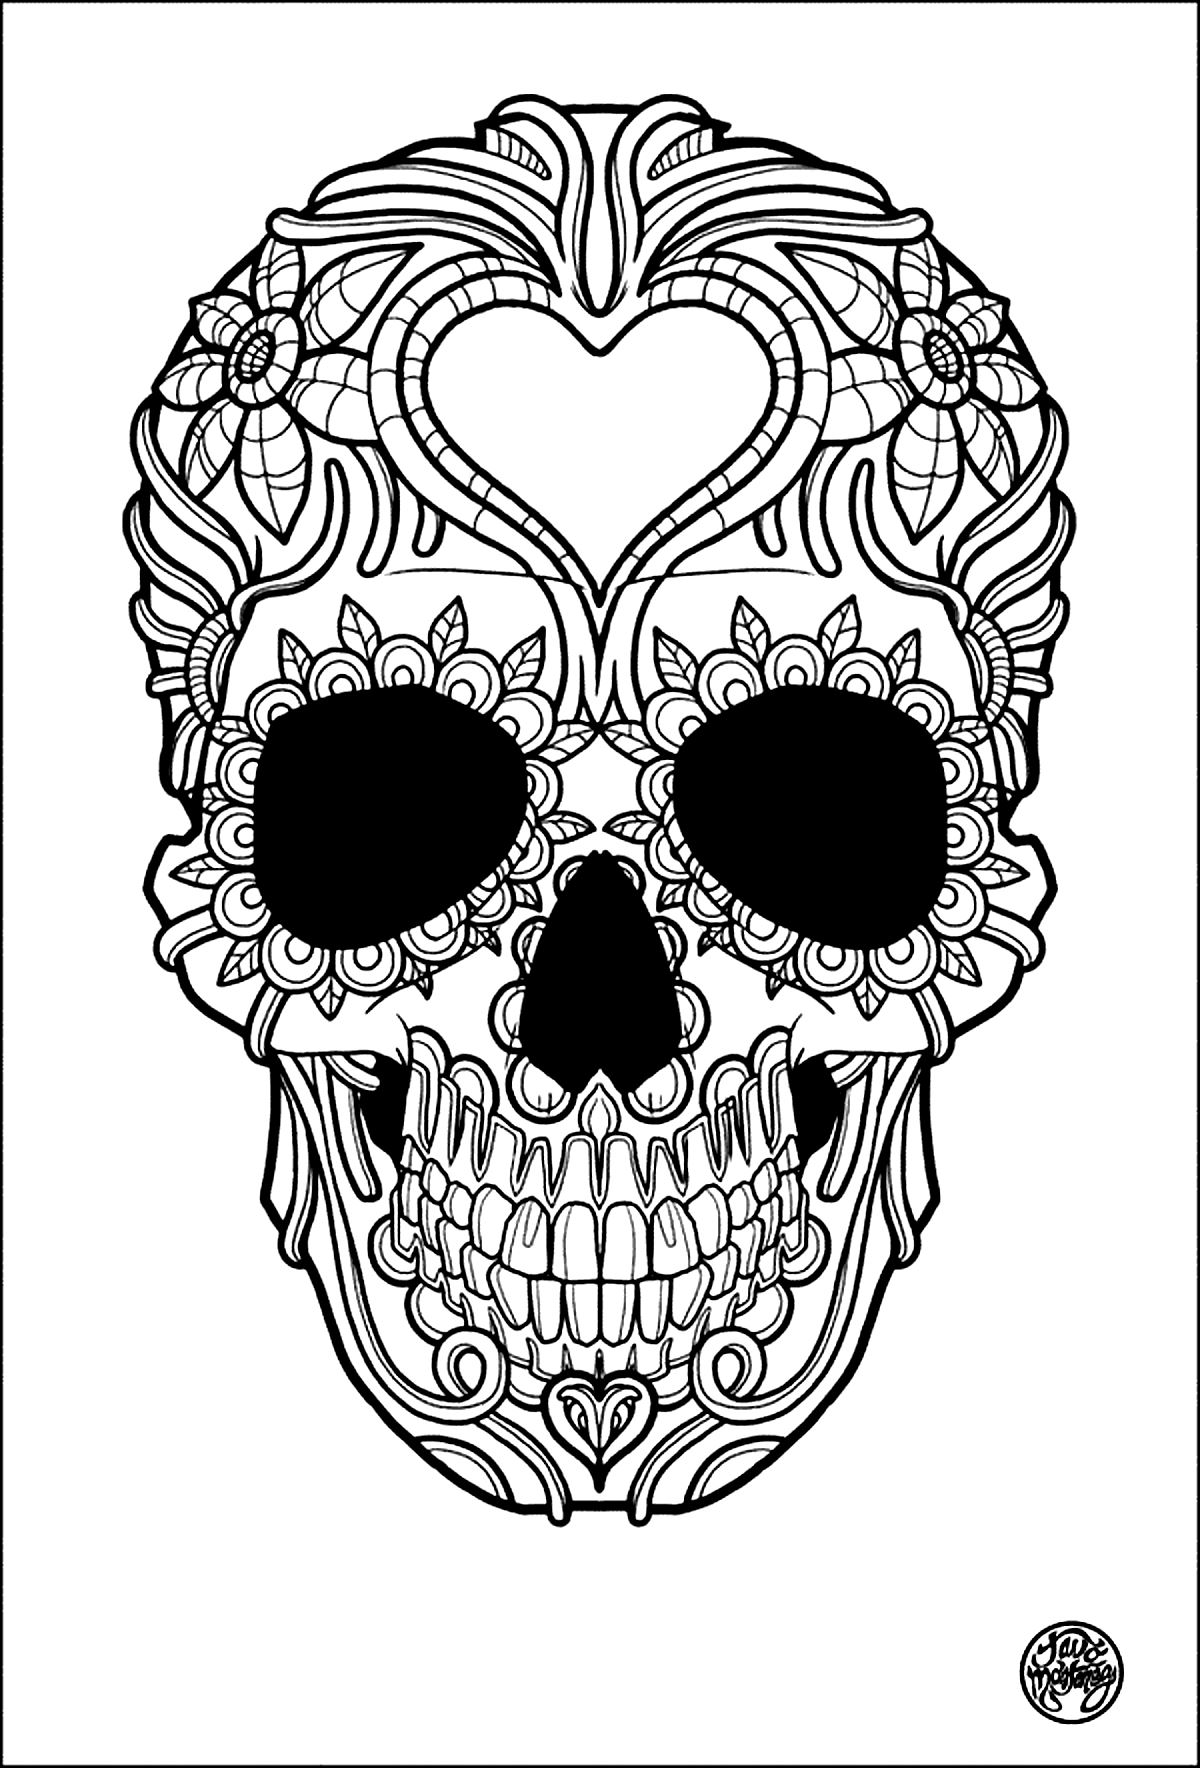 Tattoo Simple Skull Tattoo Tattoos Adult Coloring Pages